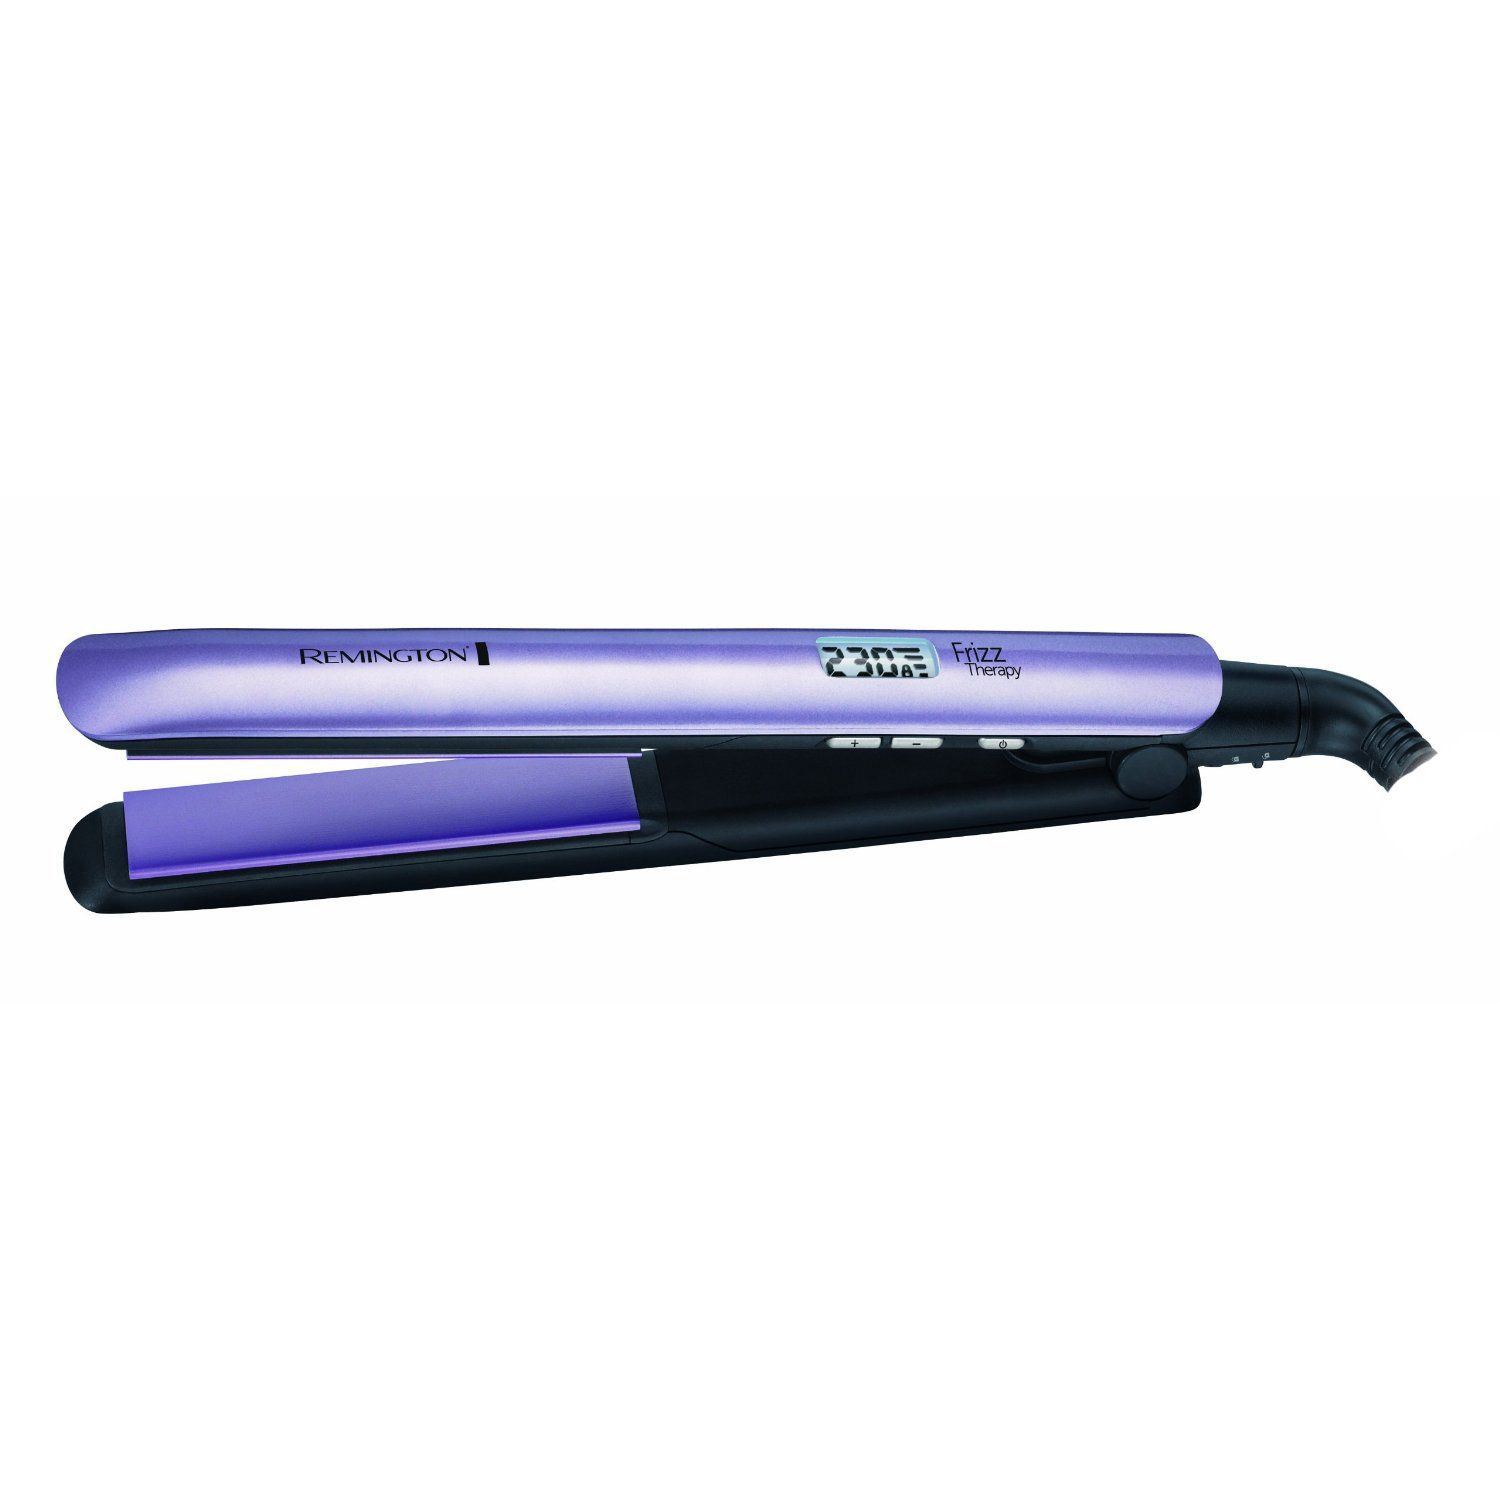 Remington S8510 Frizz Therapy Straightener